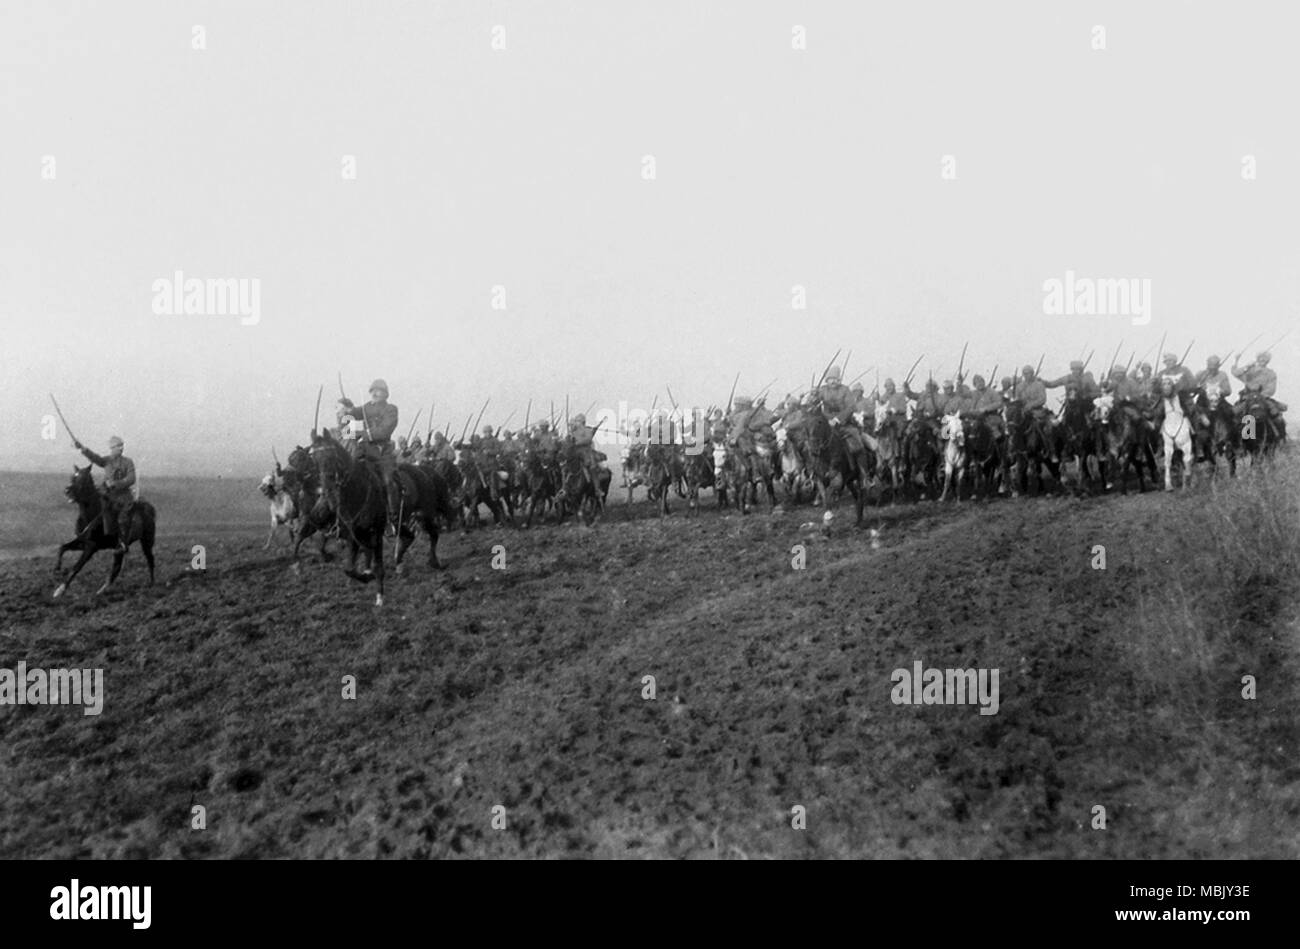 Turk Cavalry Charges in Greece - Stock Image